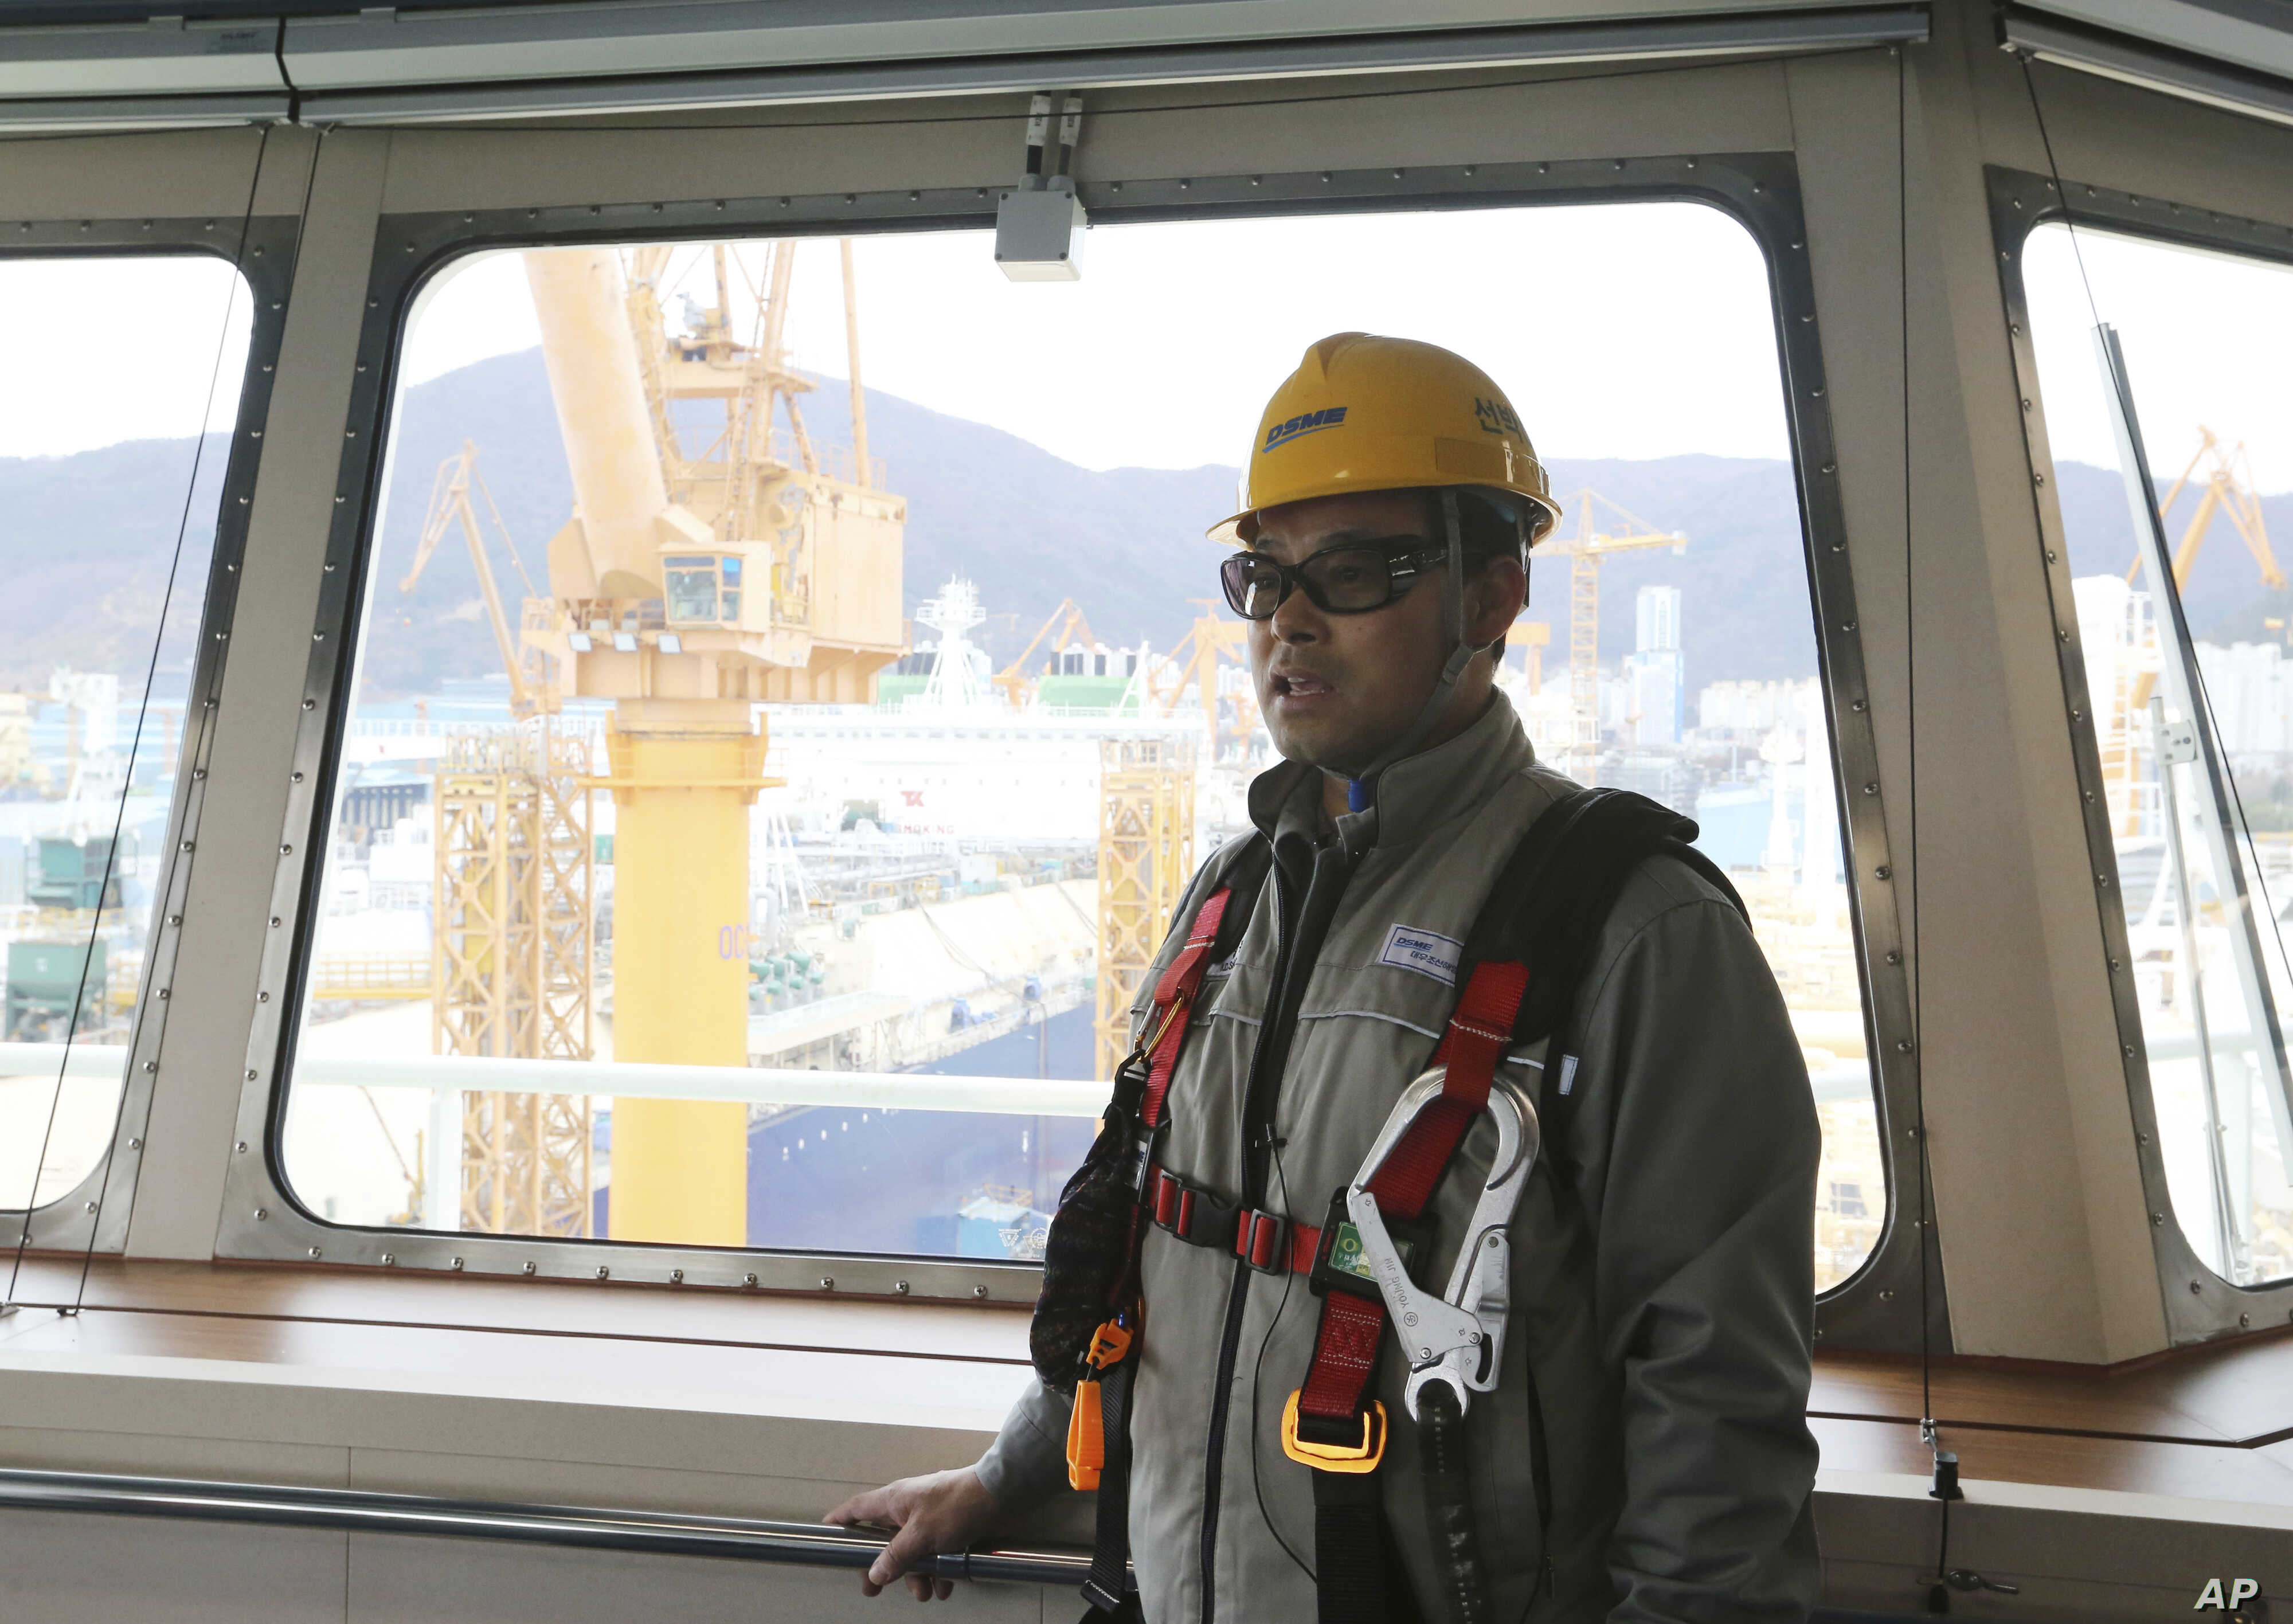 Song Ha-dong, a senior official from Daewoo Shipbuilding and Marine Engineering, speaks during an interview on the building of a large-sized liquefied natural gas (LNG) carrier at the Daewoo facility in Geoje Island, South Korea, Dec. 7, 2018.